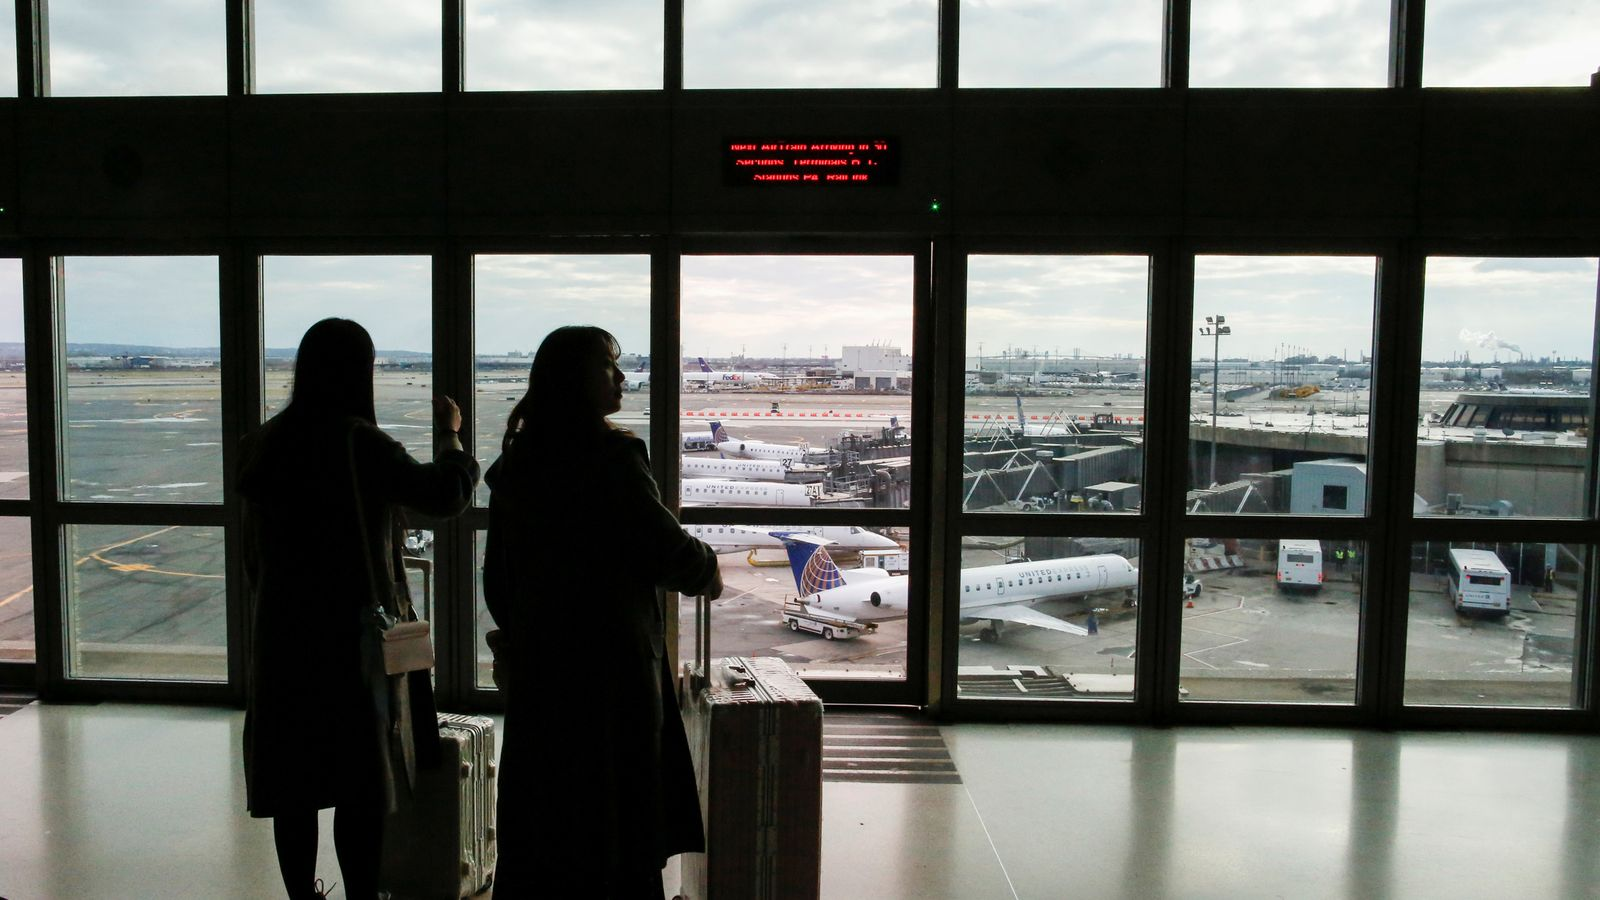 Key US airports hit by delays due to staffing issues